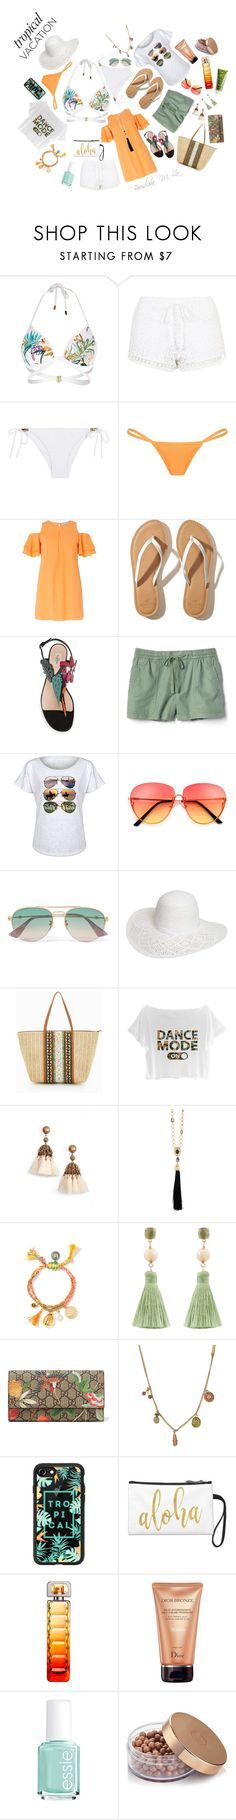 """""""Vacation Time #2"""" by borislava-zo3bi ❤ liked on Polyvore featuring River Island, Topshop, Heidi Klein, Dorothy Perkins, Hollister Co., Gap, Board Life, Gucci, ALDO and Loren Hope"""